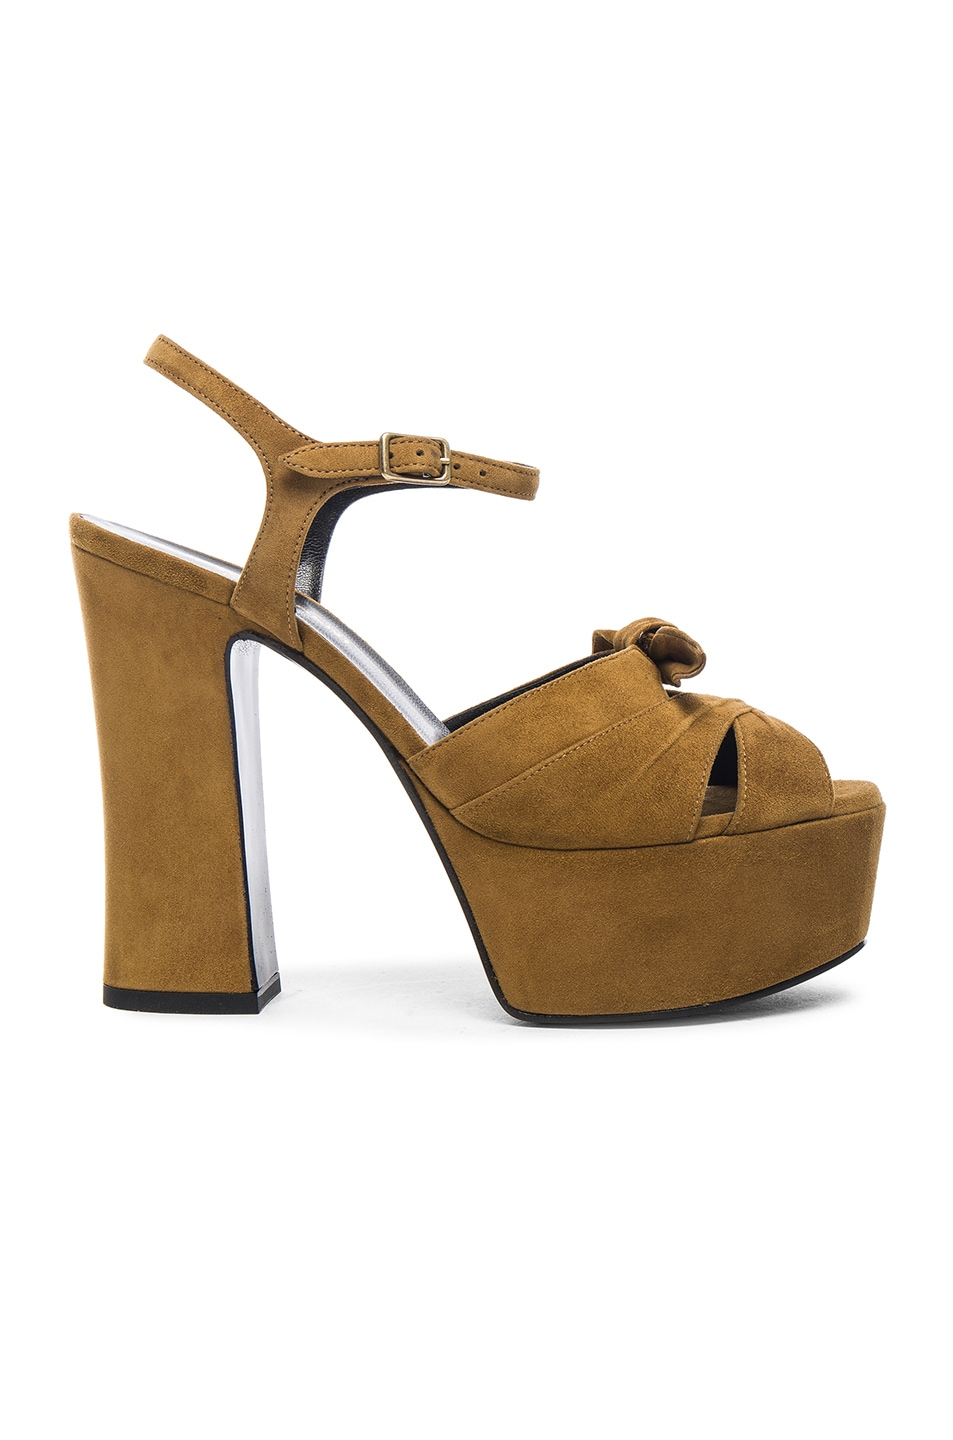 eb9f84157ef Image 1 of Saint Laurent Suede Candy Heels in Tan